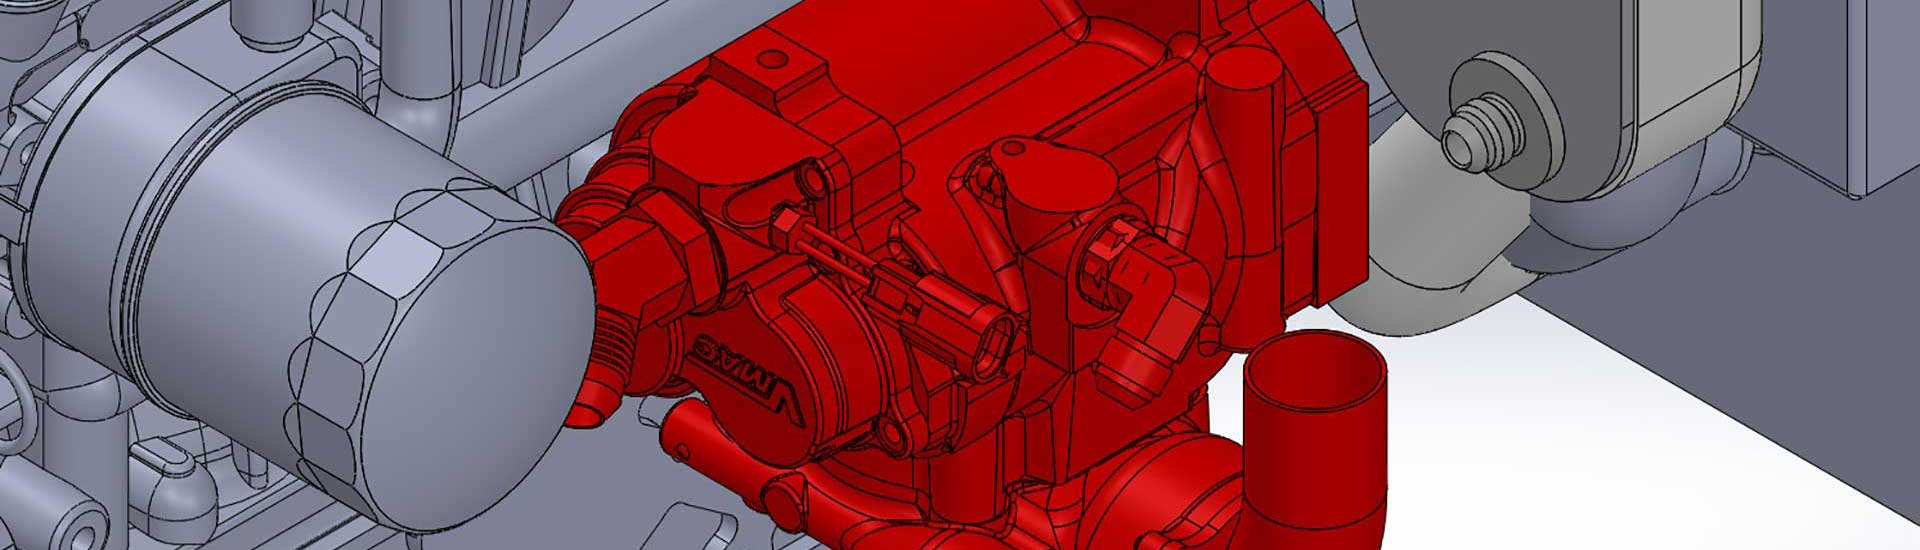 port-compressor-red-outlined